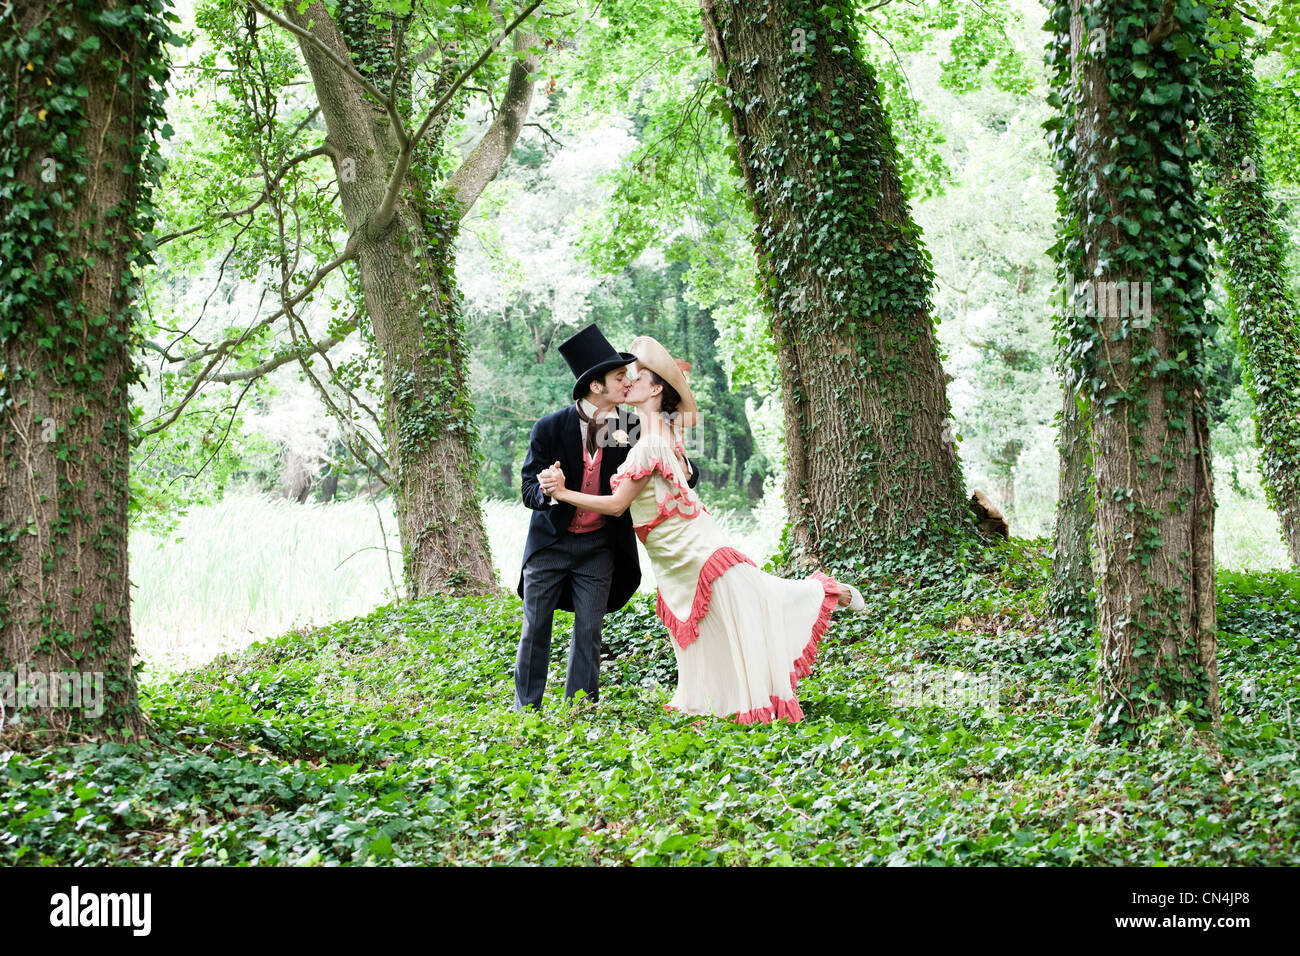 Bridal couple in 1920s style clothing, kissing in park - Stock Image